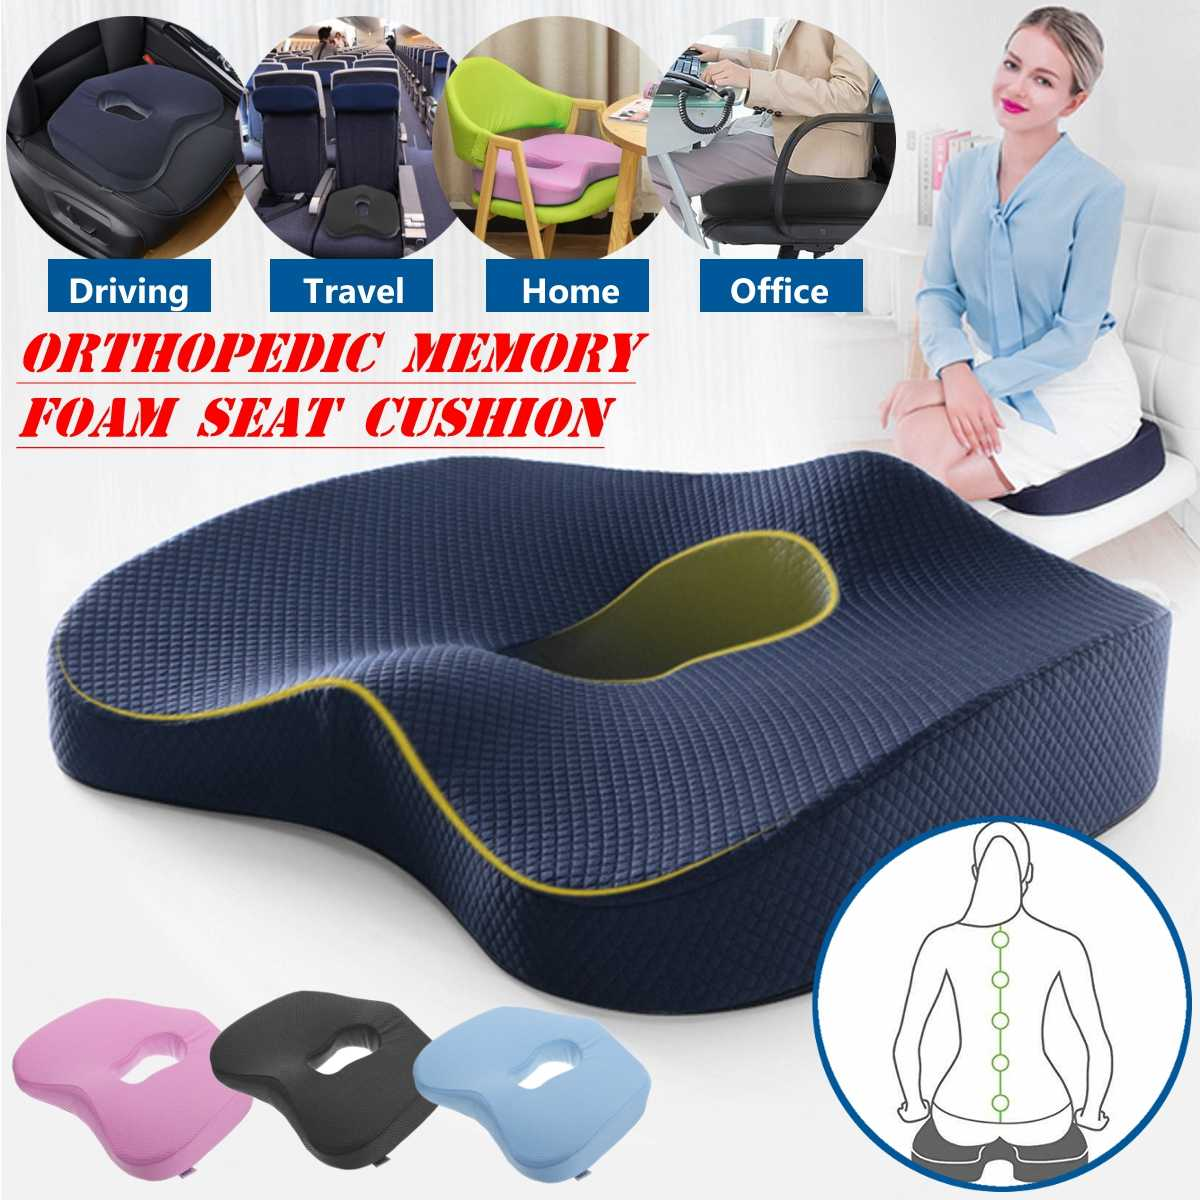 Non-Slip Orthopedic Memory Foam Seat Cushion For Office Chair Car Wheelchair Back Support Sciatica Coccyx Tailbone Pain Relief